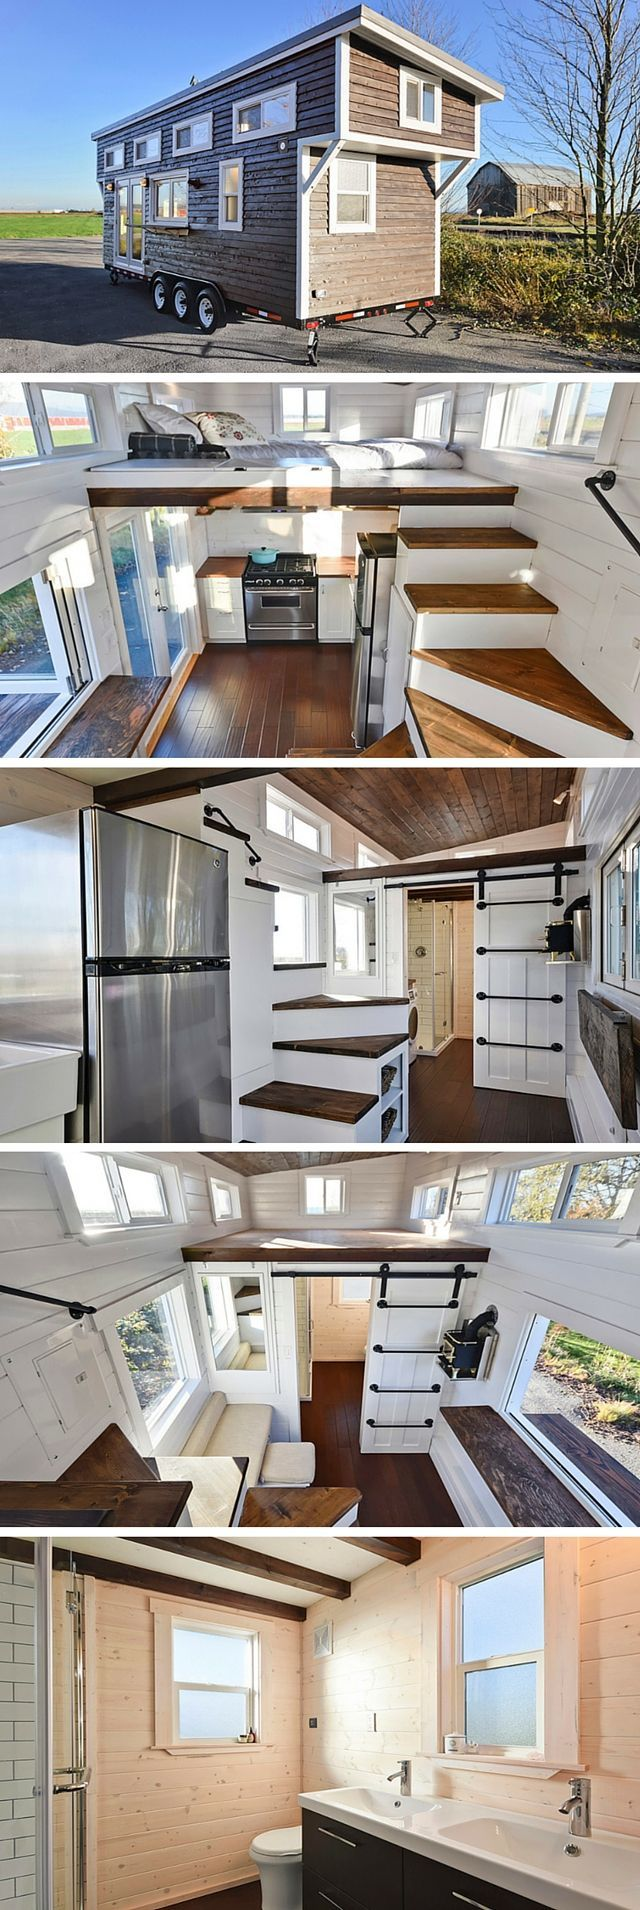 104 best MY tiny house images on Pinterest | Small houses, Tiny house cabin  and Gypsy caravan